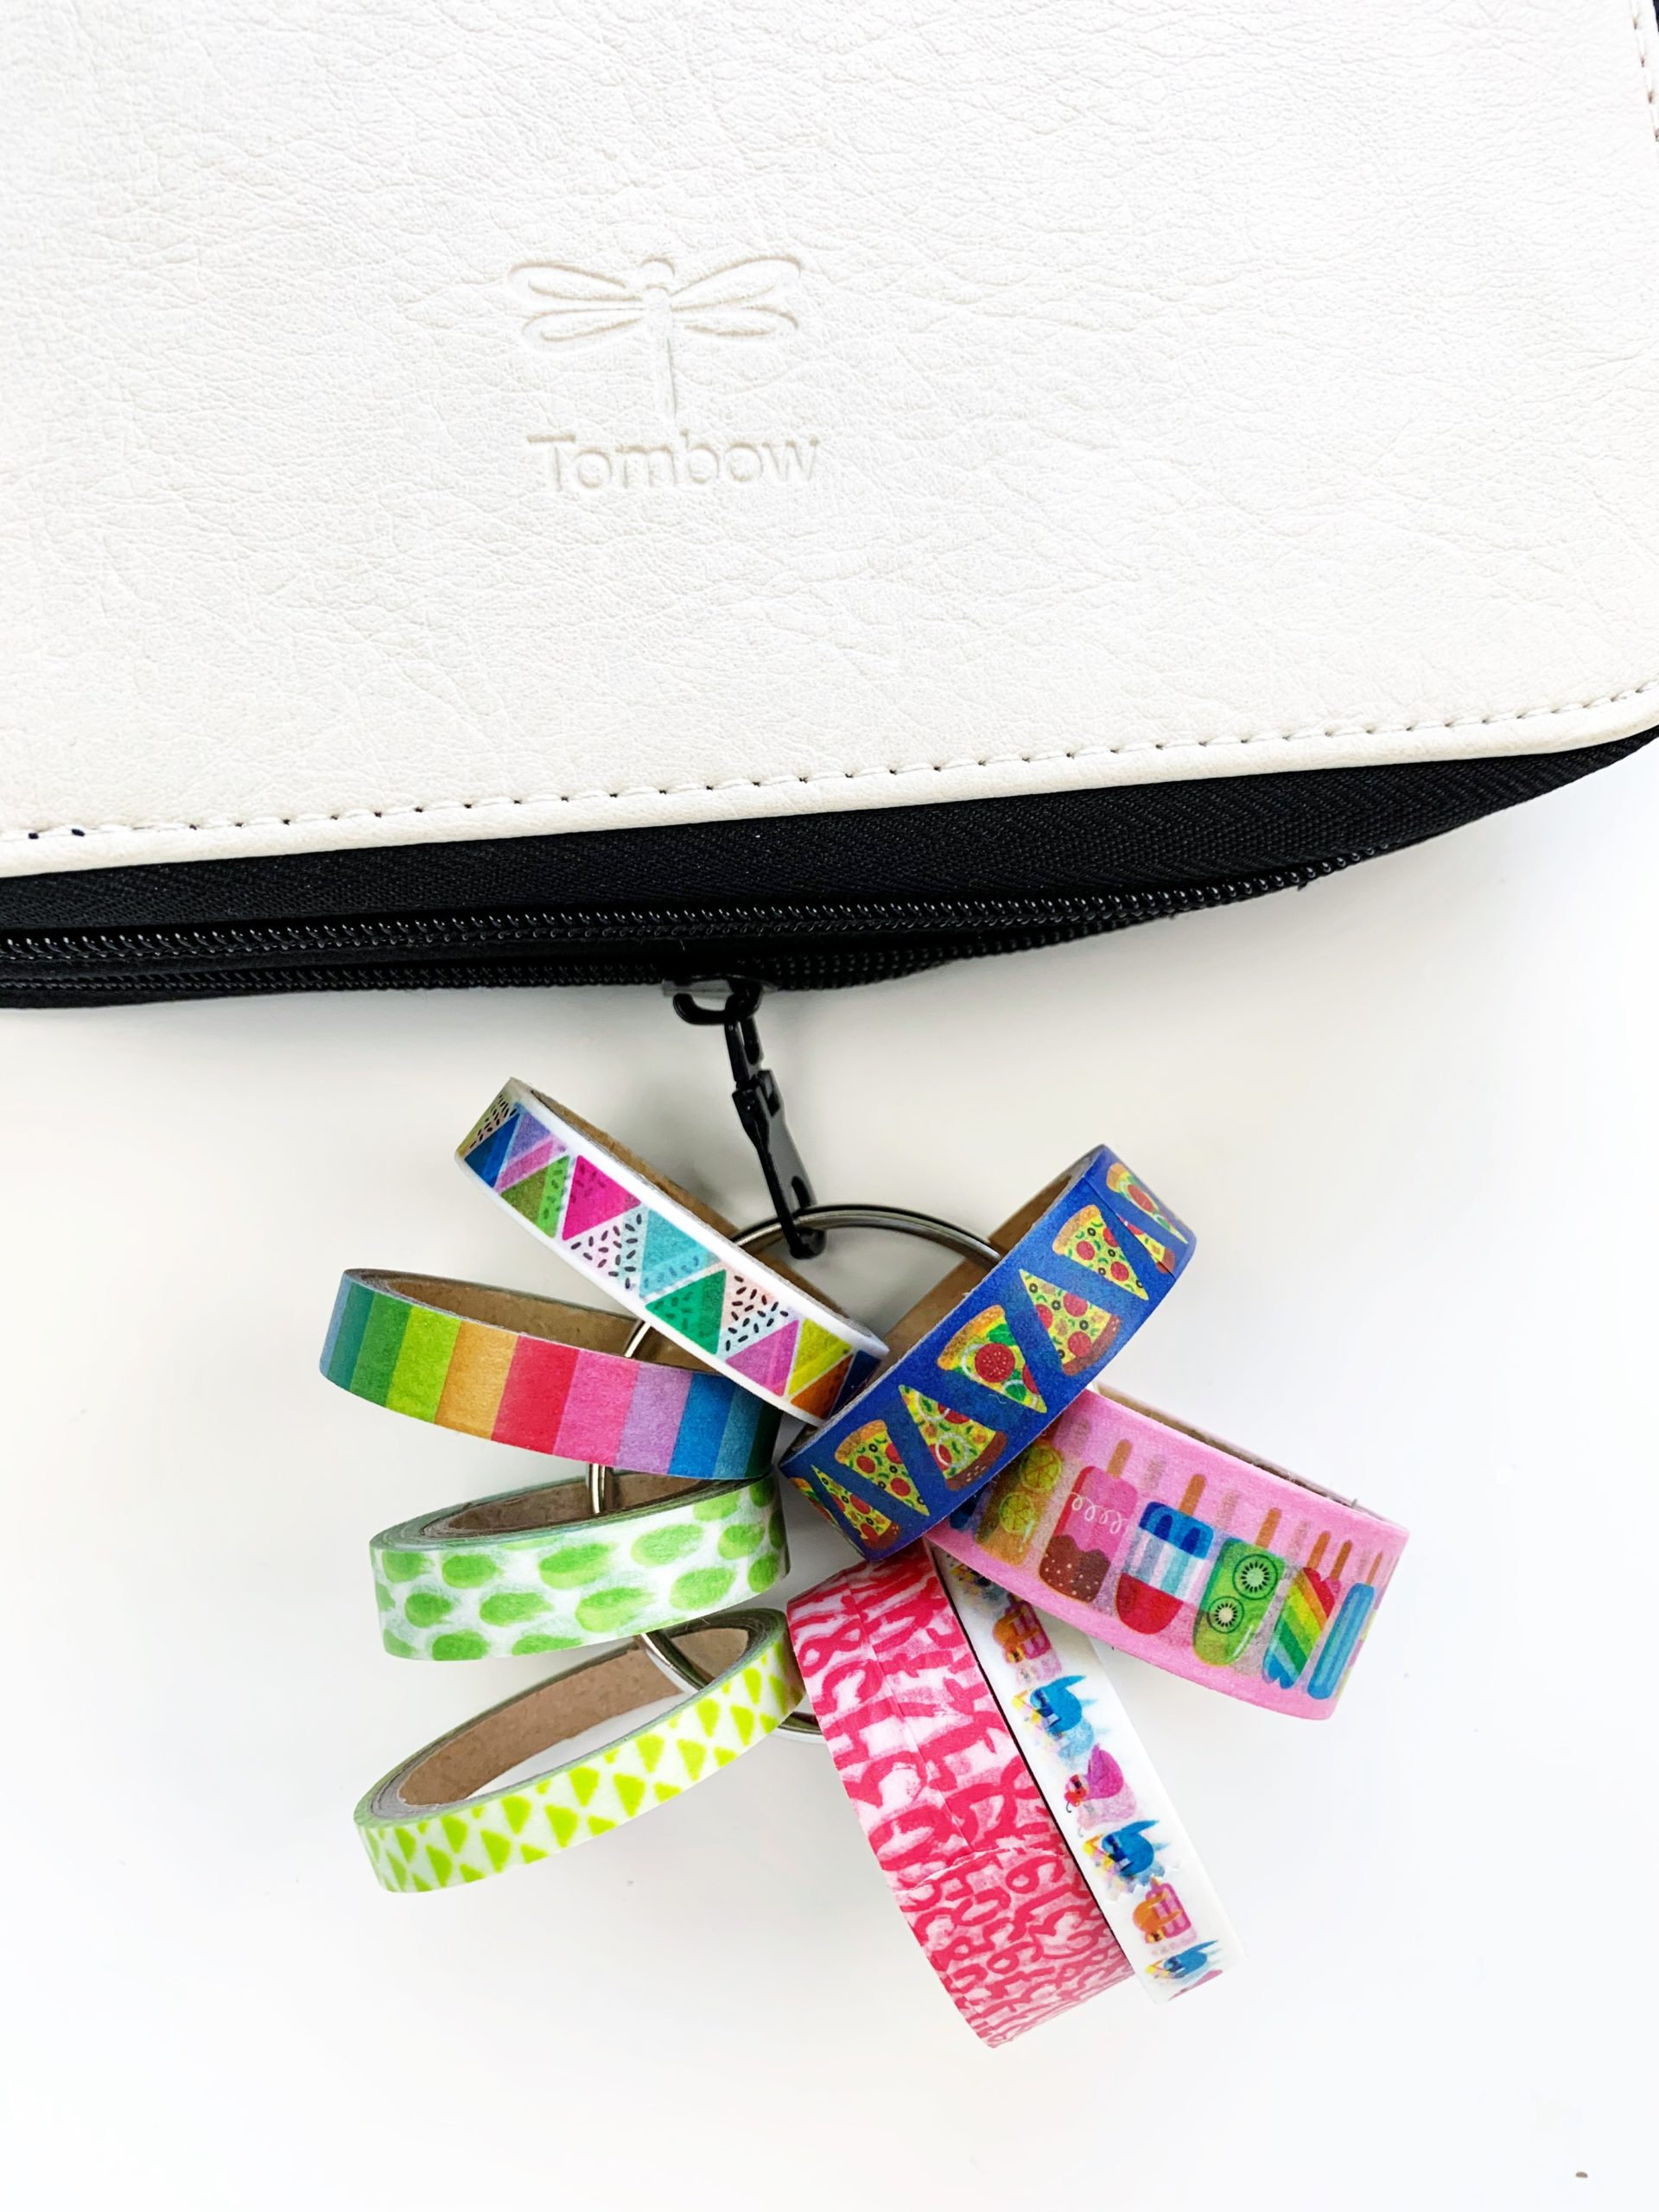 Use the zipper of the Tombow Zippered Marker Storage to add a ring with washi tape. #tombow #washitape